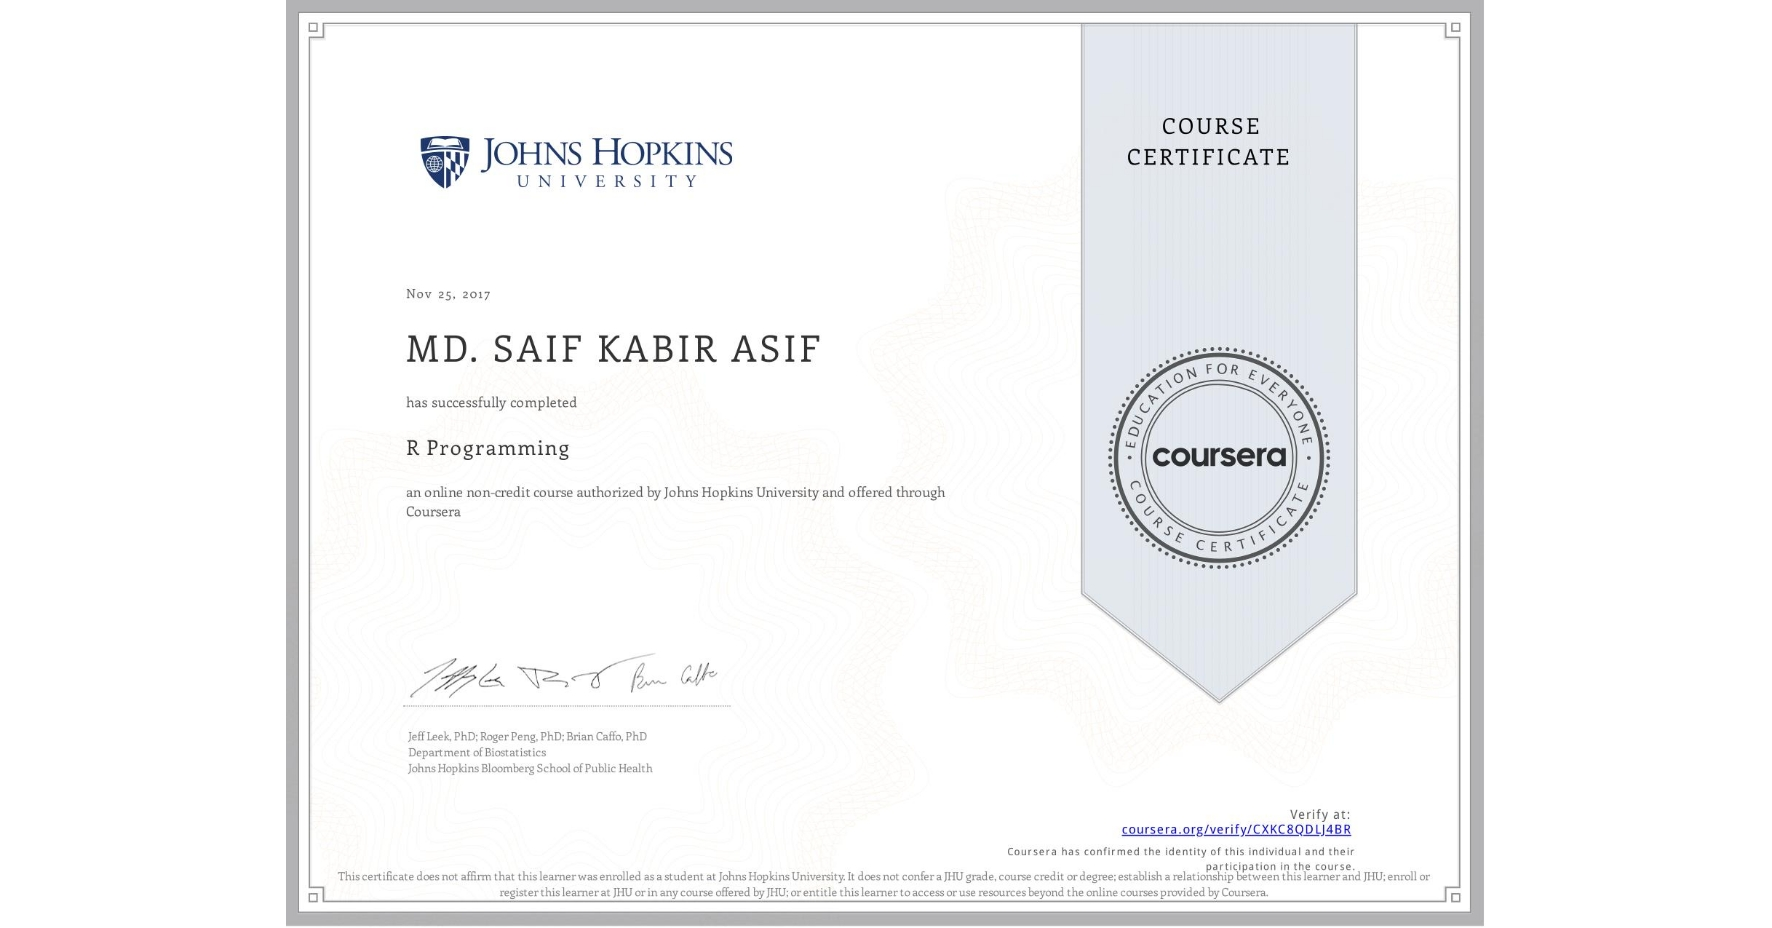 View certificate for Md. Saif Kabir  Asif, R Programming, an online non-credit course authorized by Johns Hopkins University and offered through Coursera